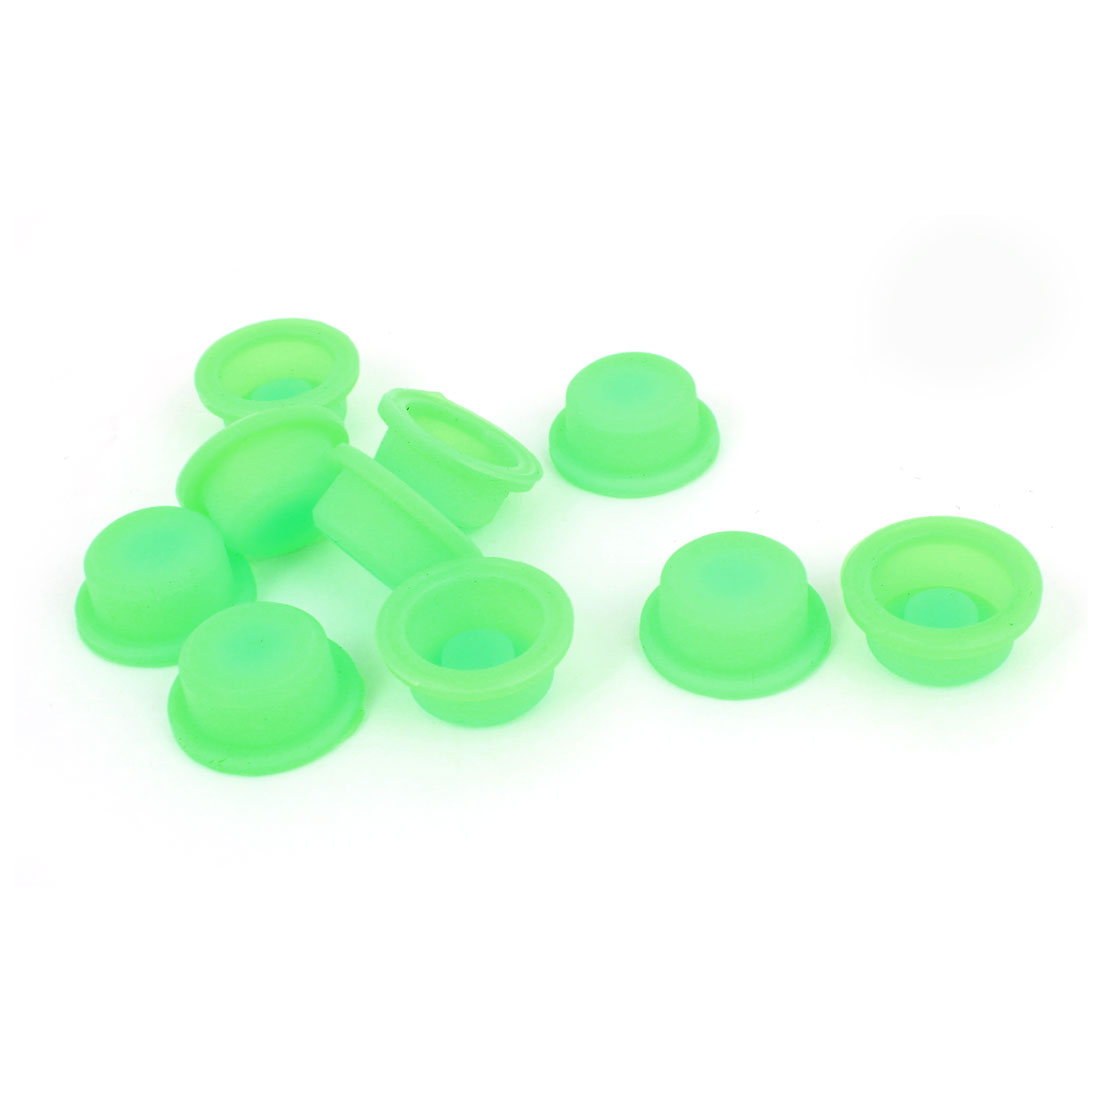 10pcs 13mm Inner Dia Protective Waterproof Silicone Switch Cover Guard Green